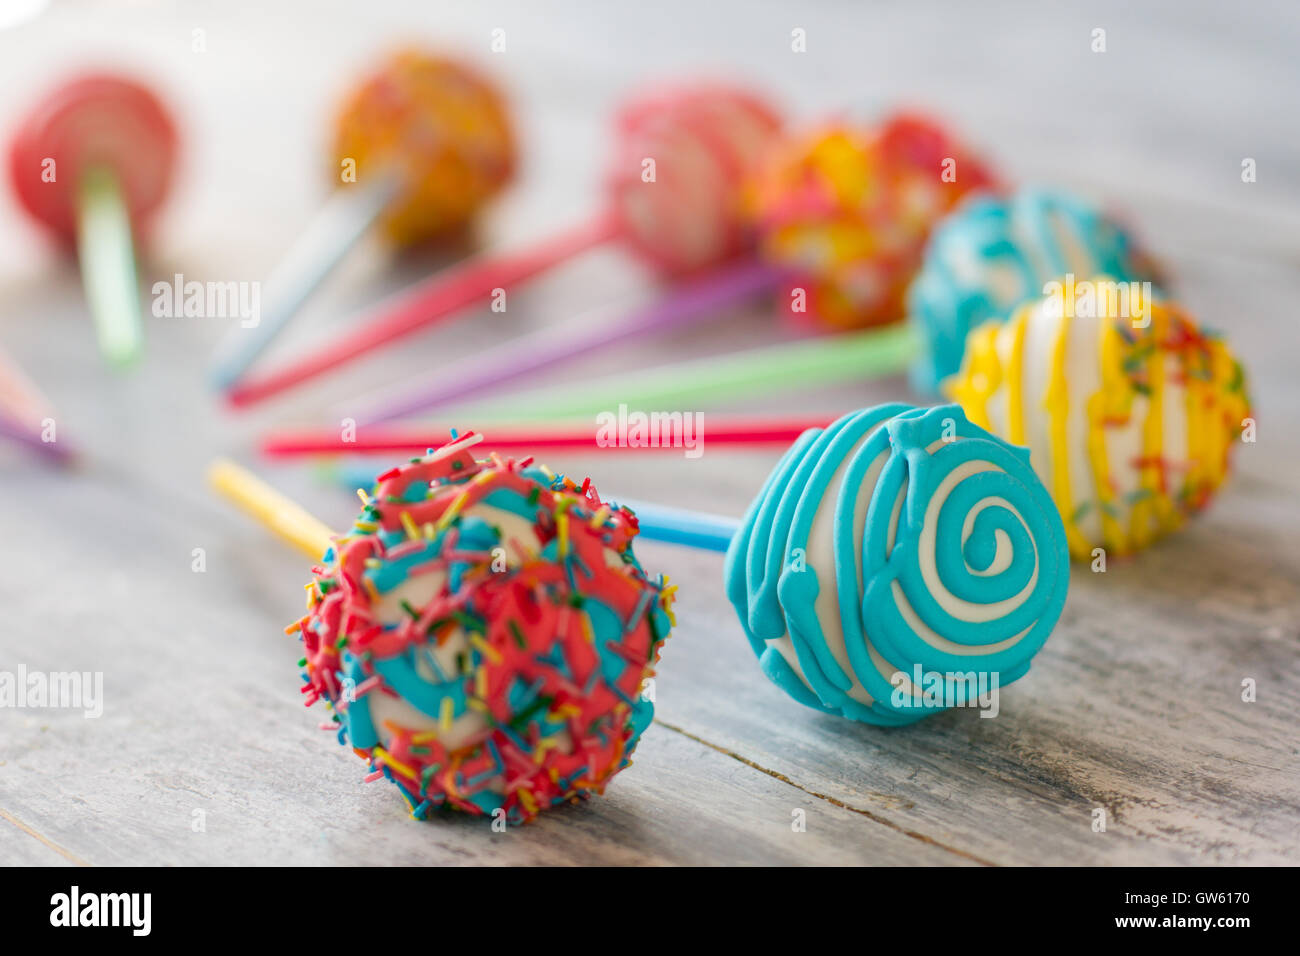 Colorful ball-shaped sweets. - Stock Image